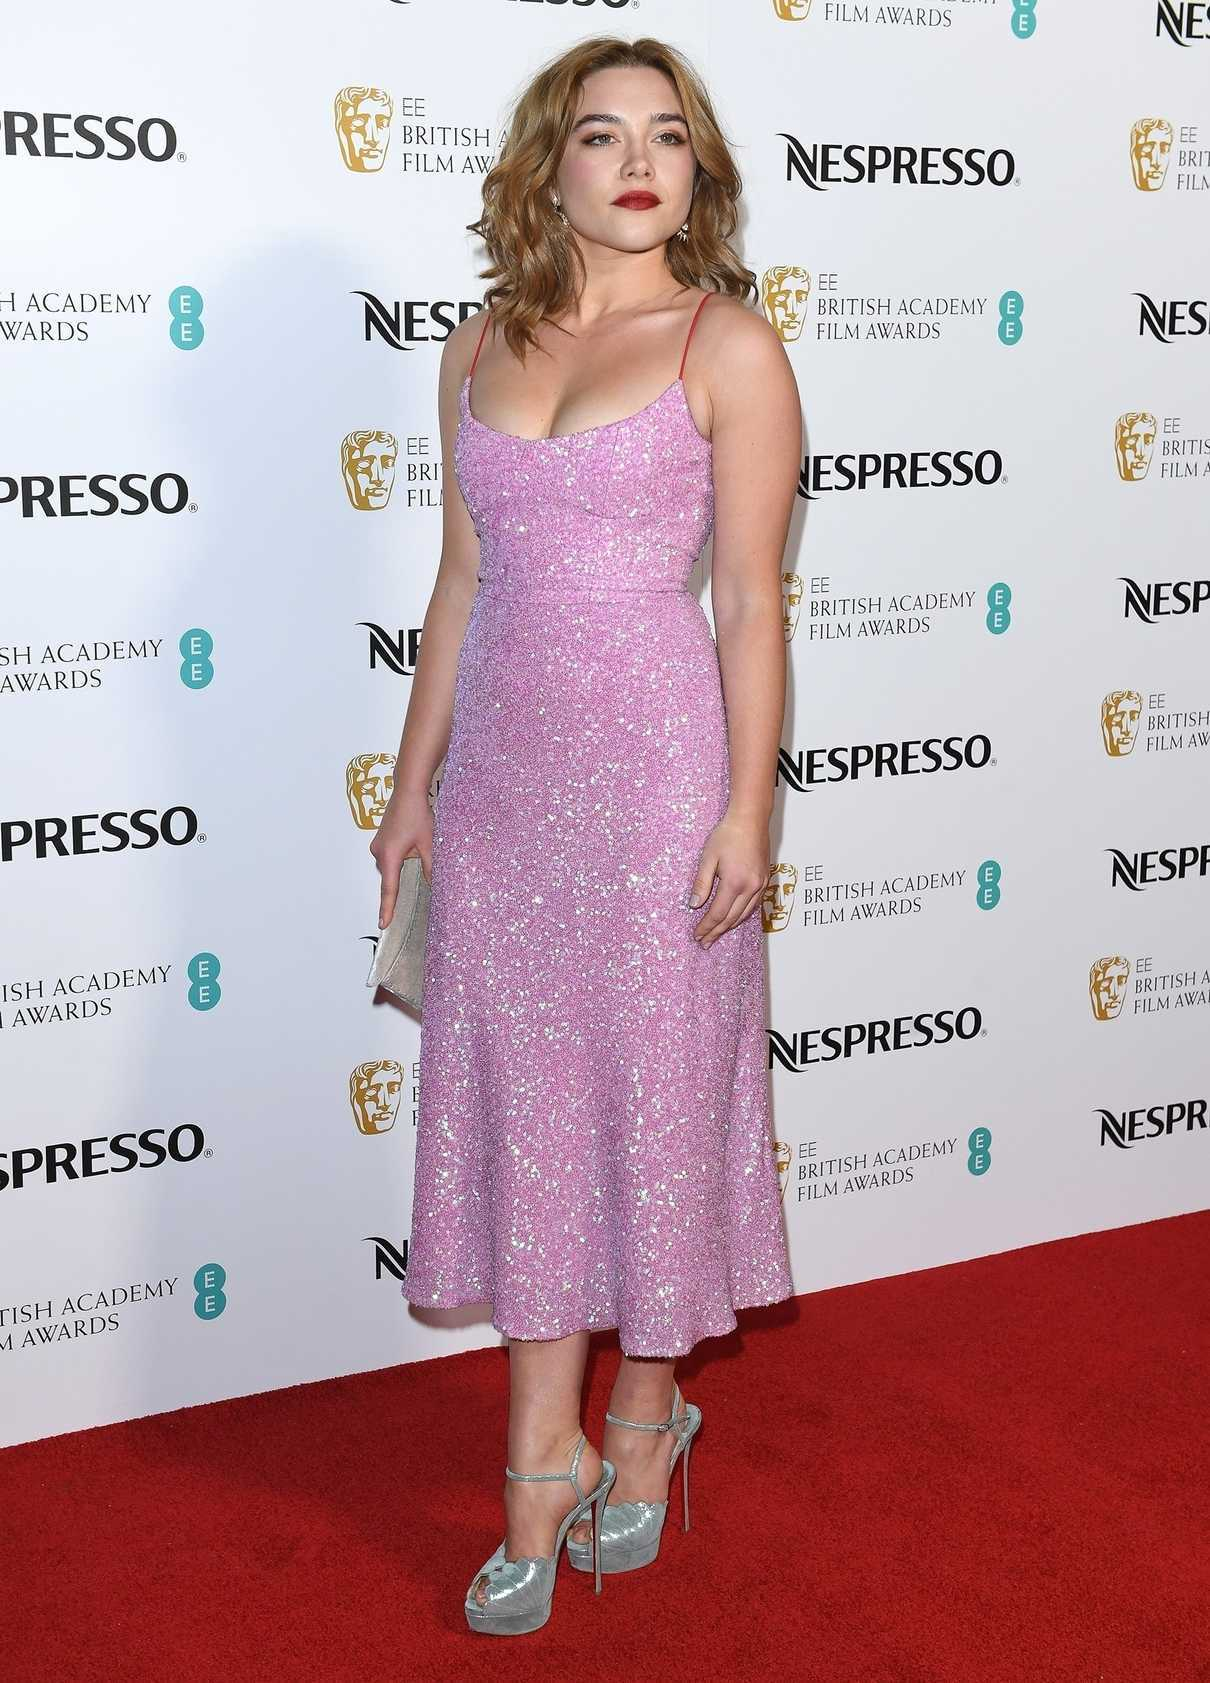 Florence Pugh - British Academy Film Awards Nominees Party